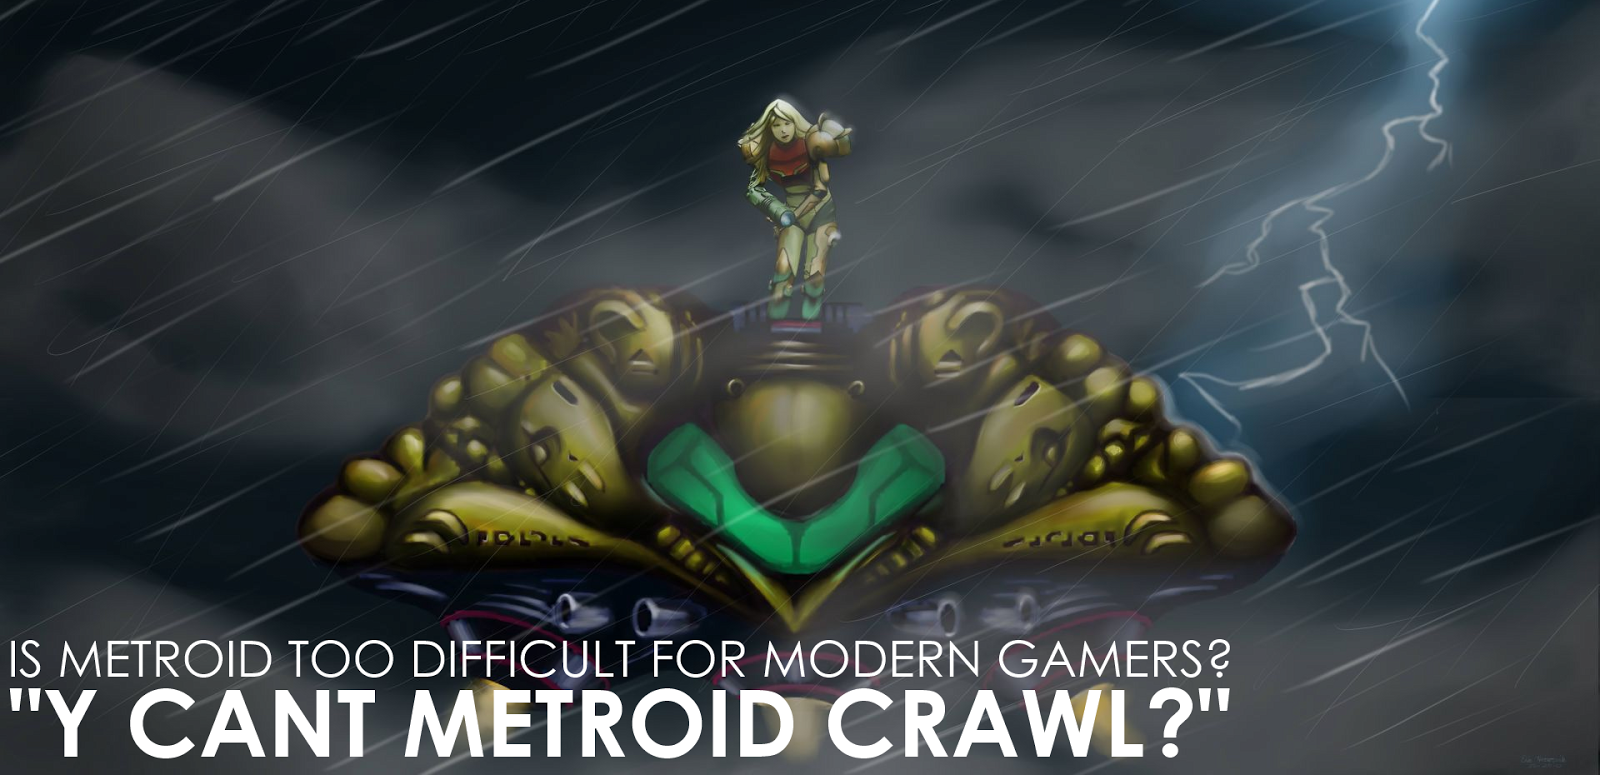 cant metroid crawl a miiverse post from a bedraggled wii u owner